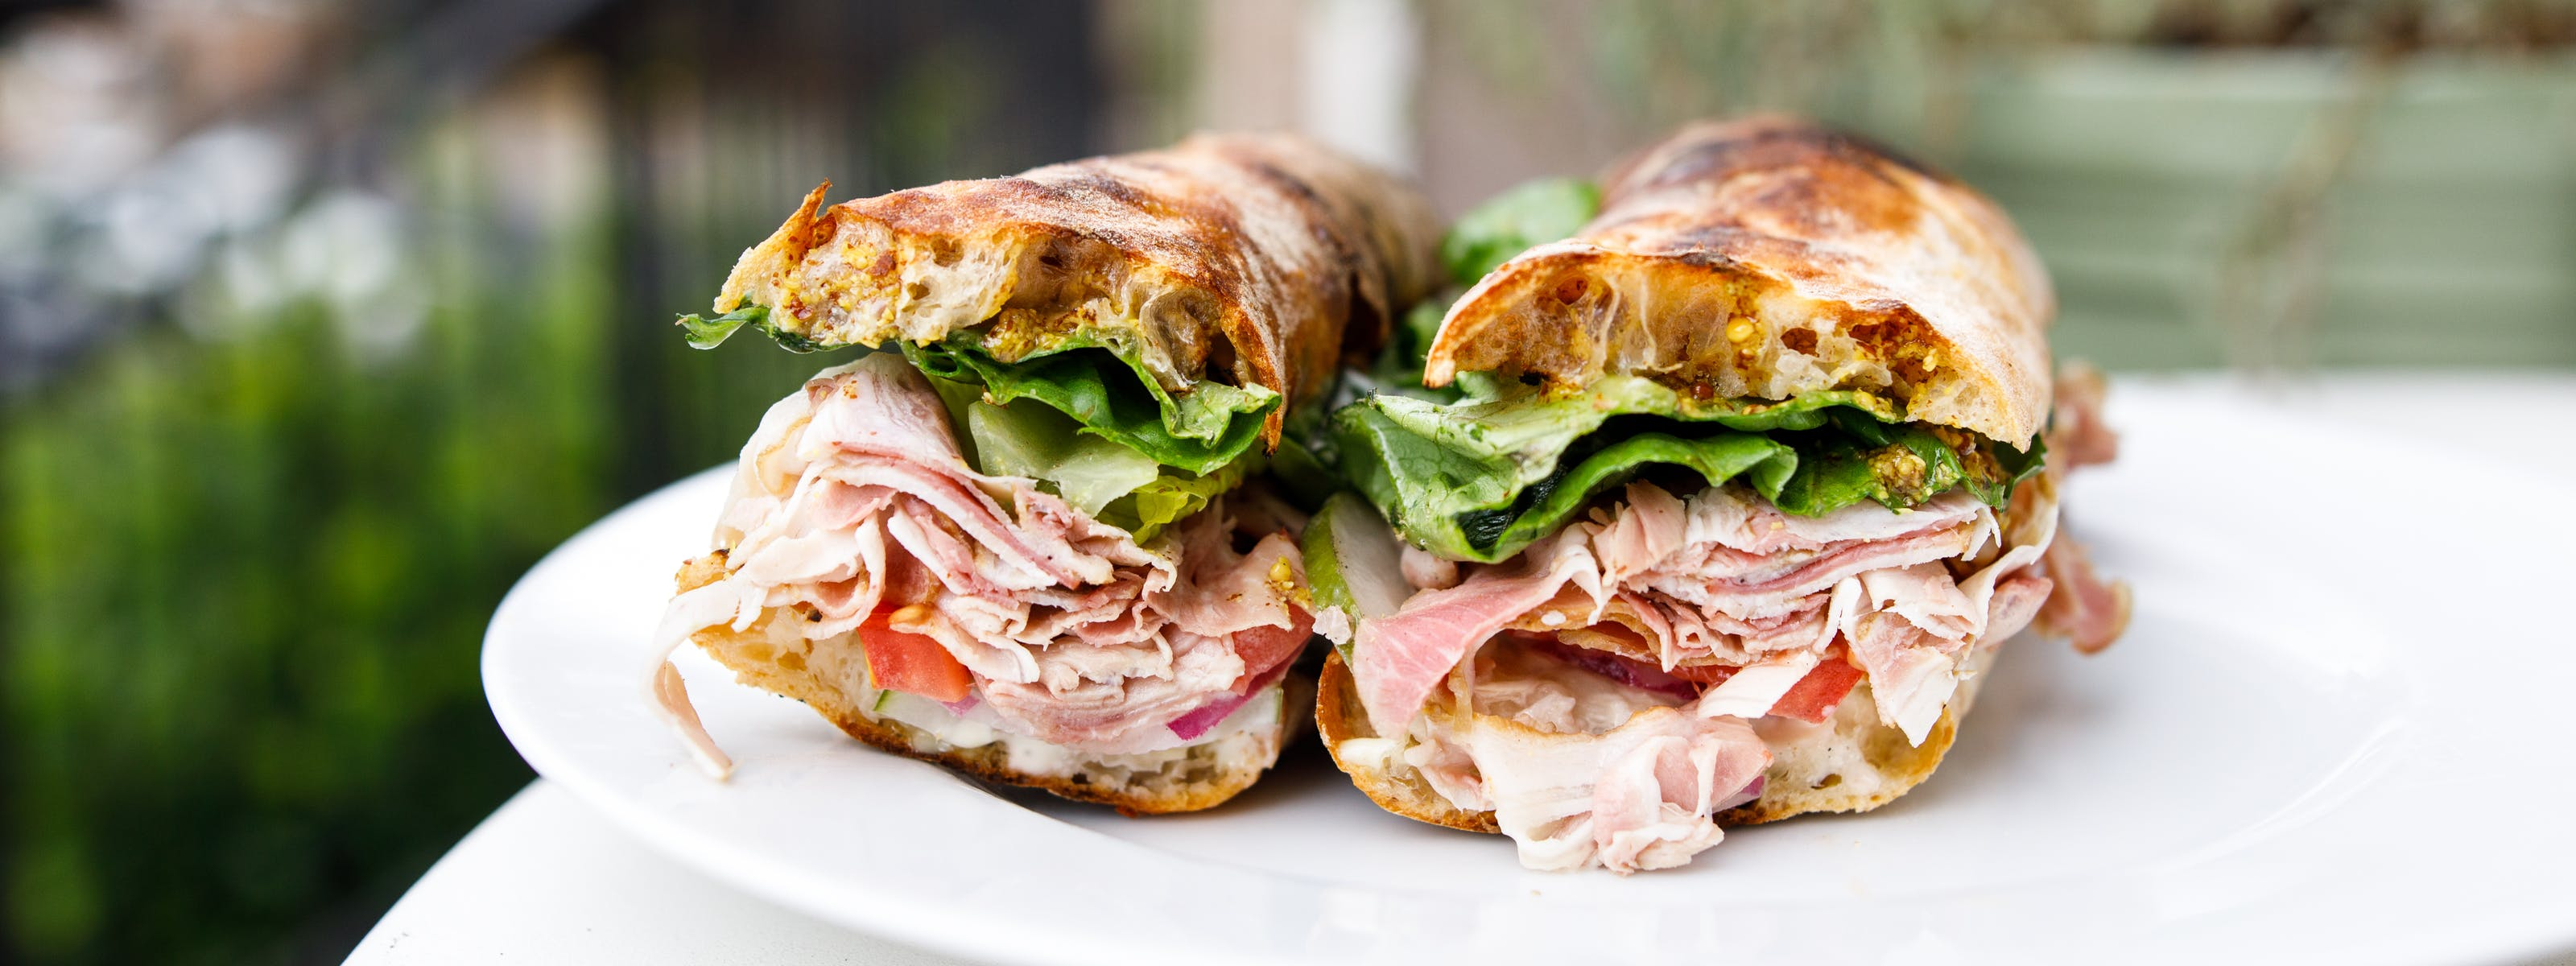 The 10 Best New Sandwiches In Austin - Austin - The Infatuation